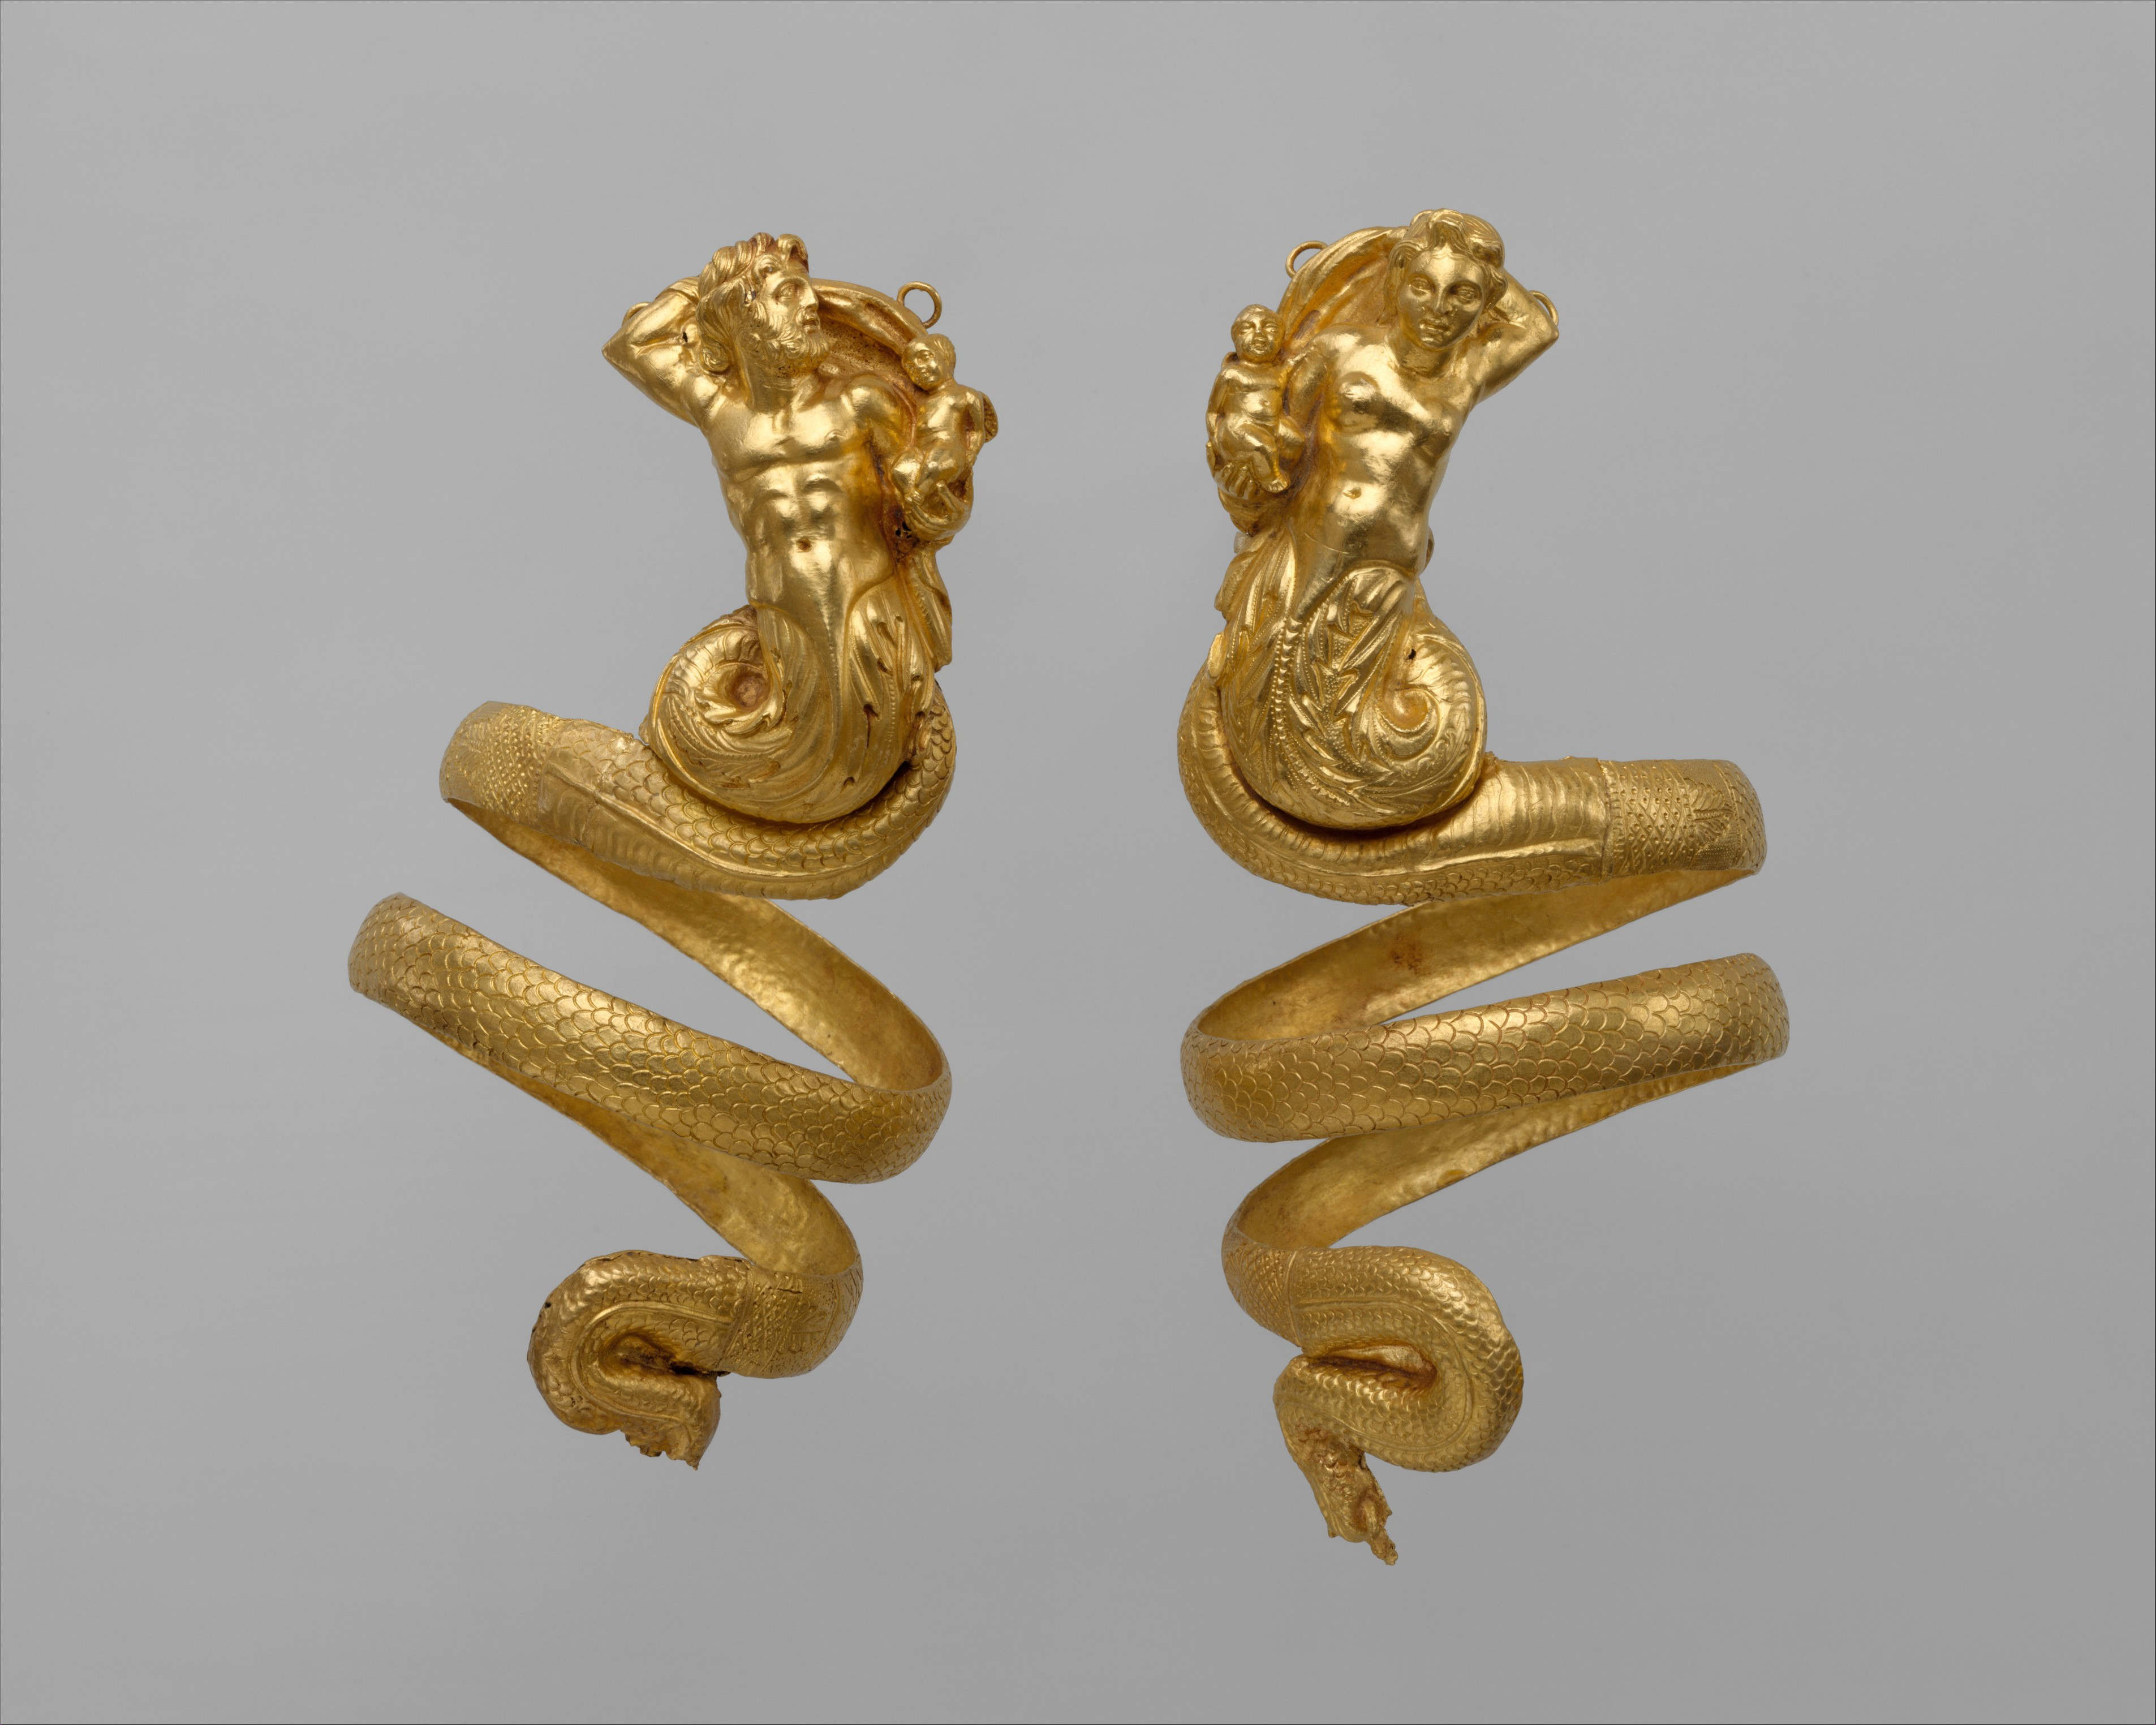 FilePair of gold armbands MET DT5060jpg Wikimedia Commons